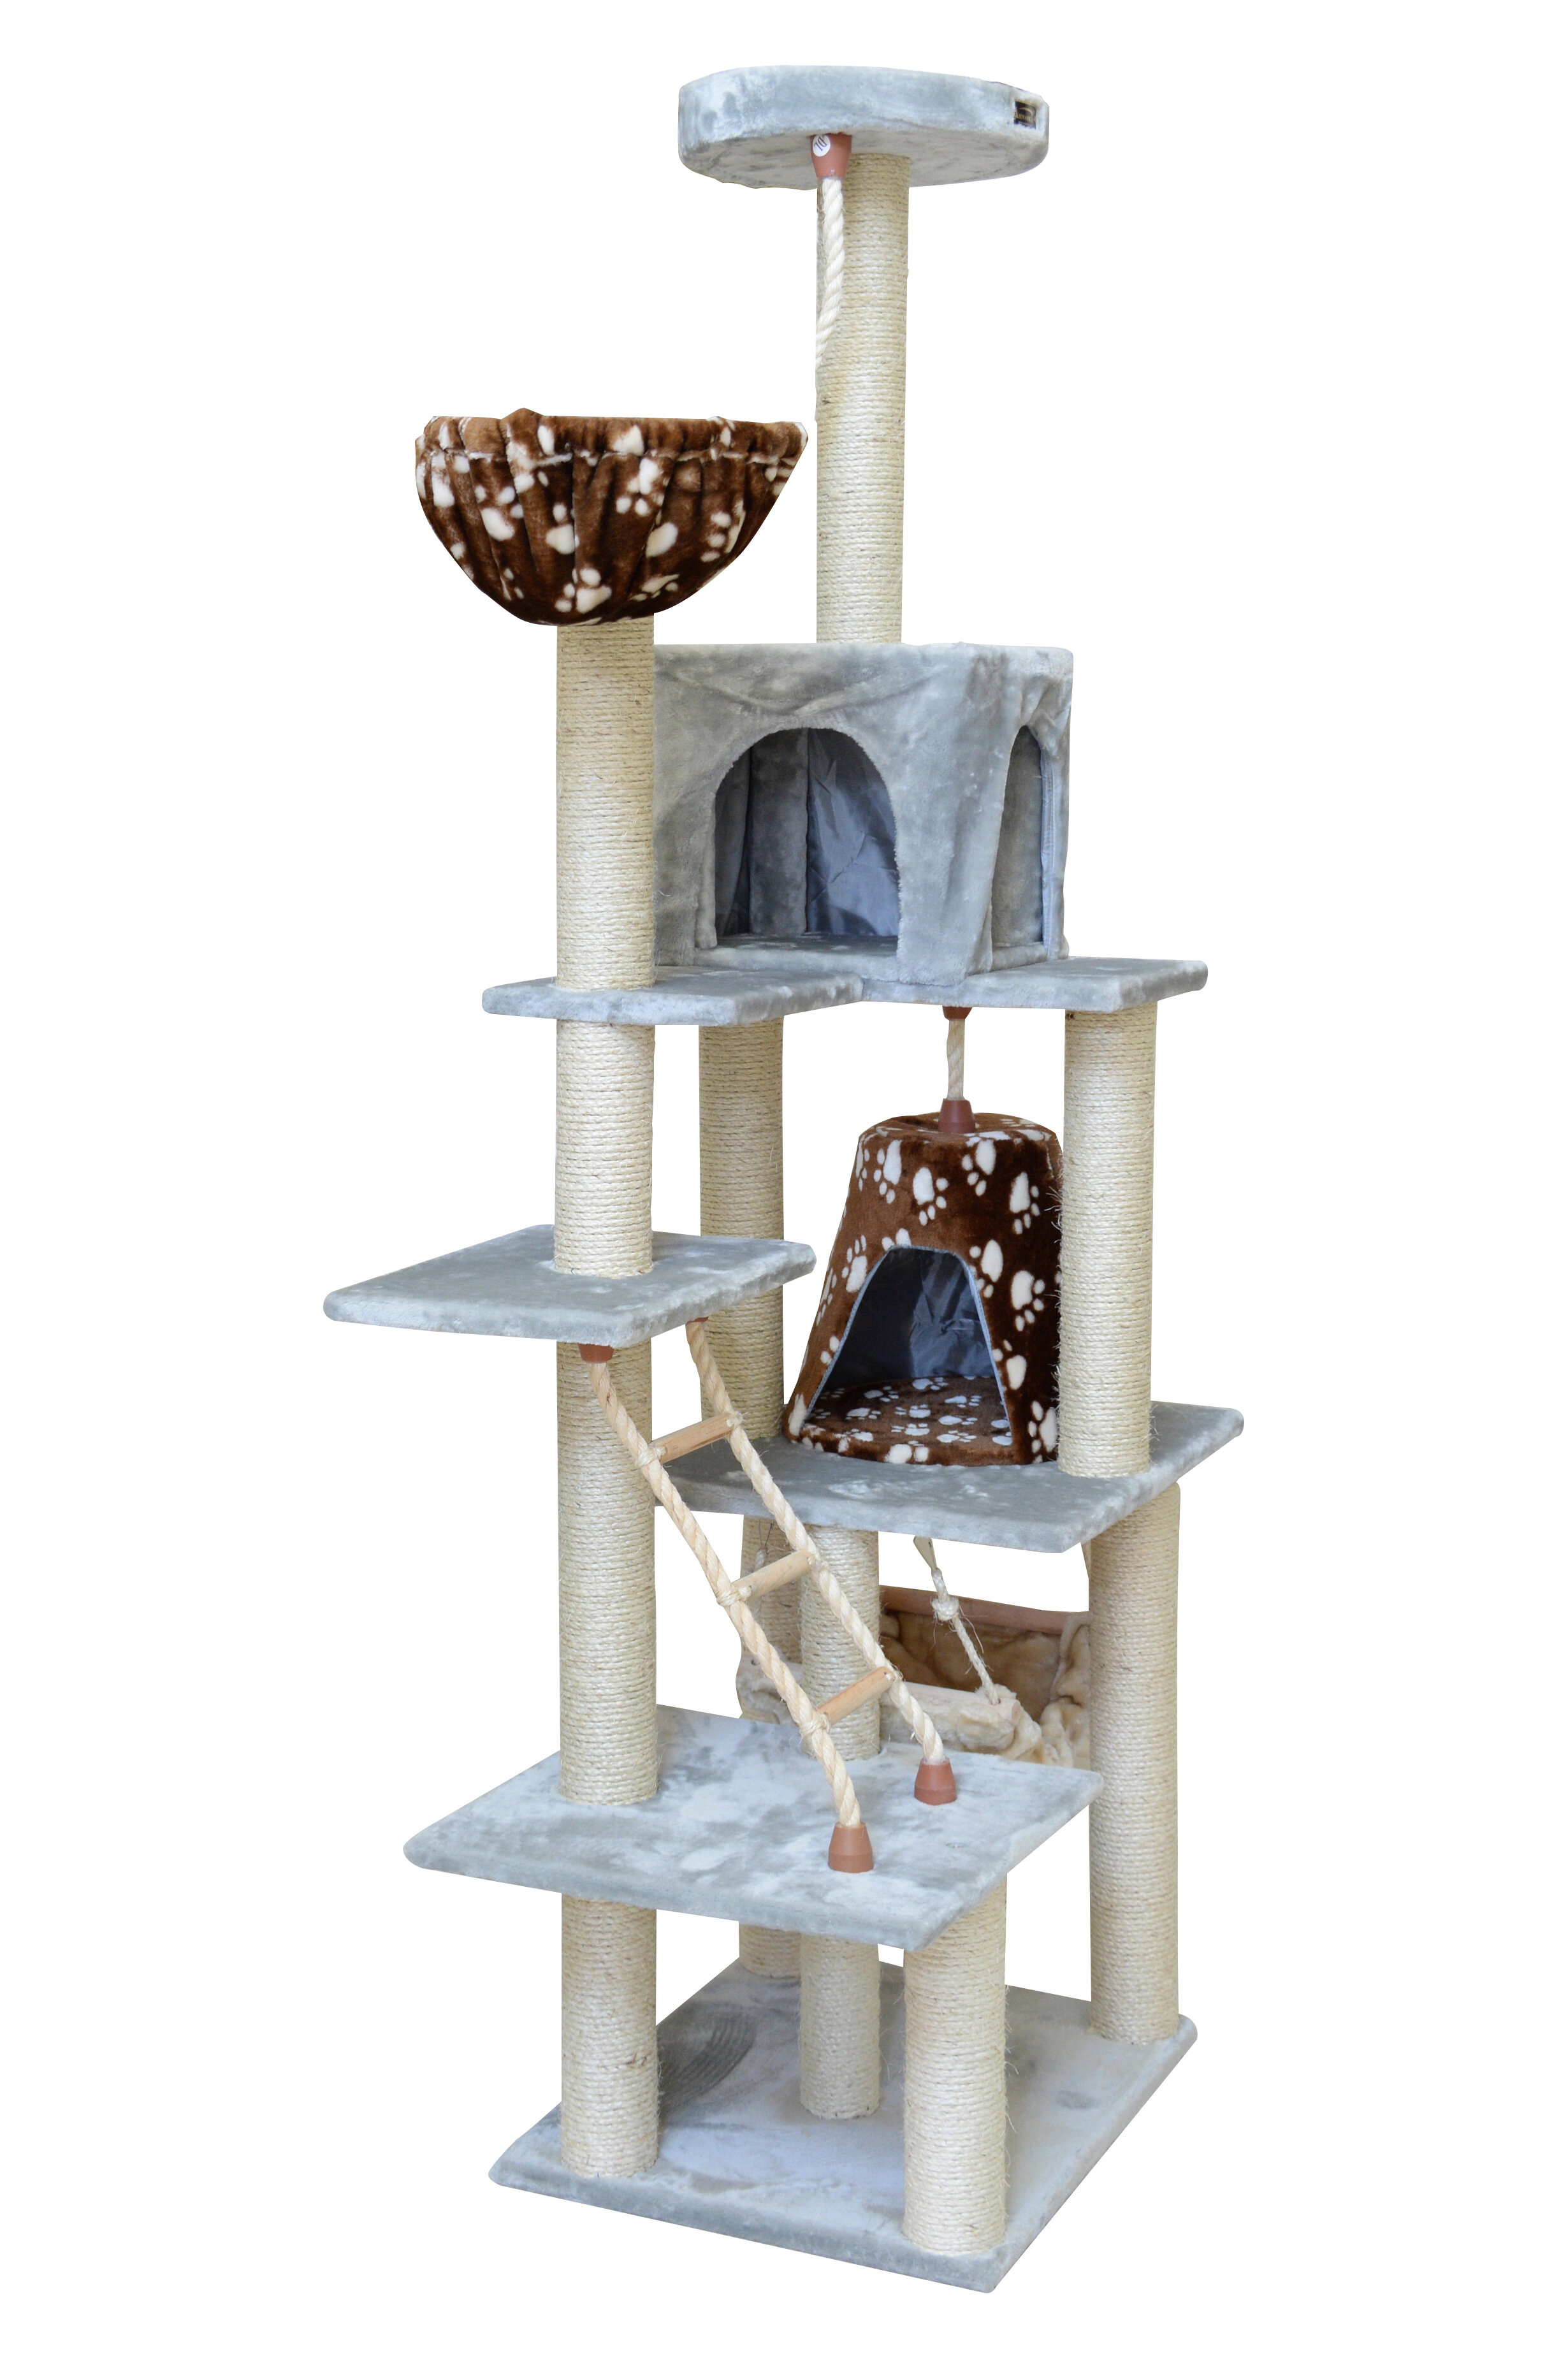 new cat tower best scratch house condo kitty pet tree furniture img beige post product